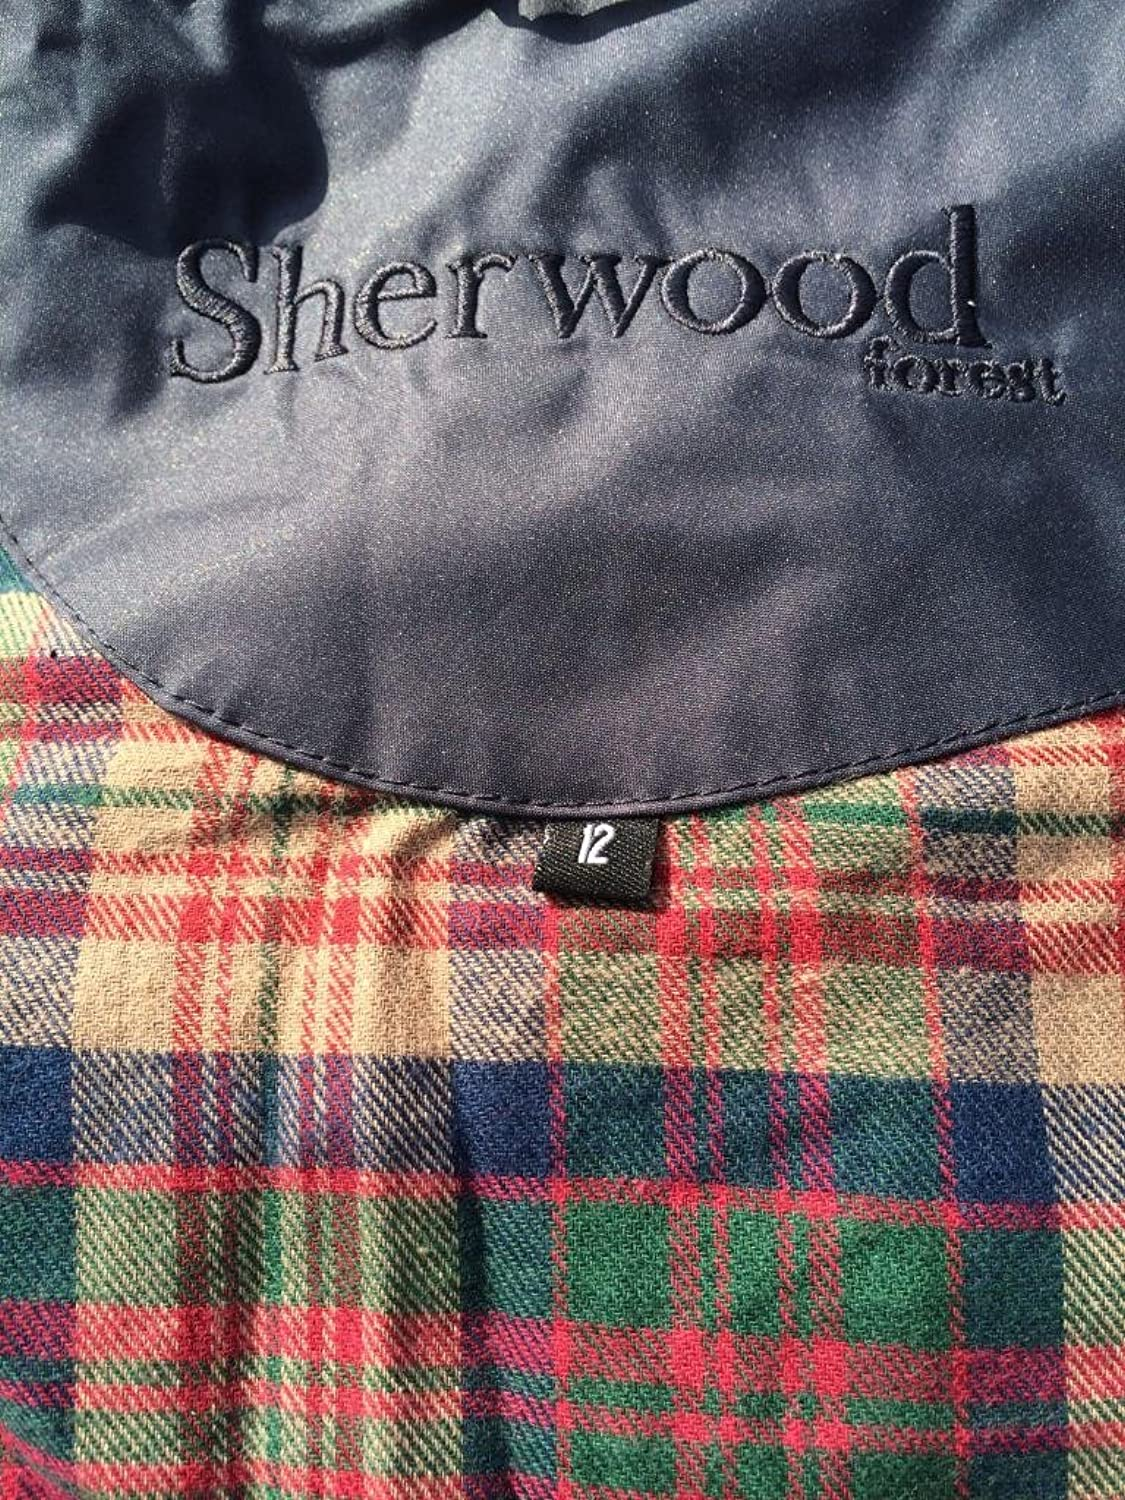 Size 10 Sherwood Oakfield Ragley Superior Quality Full Length Ladies Waterproof Coat - Navy Blue